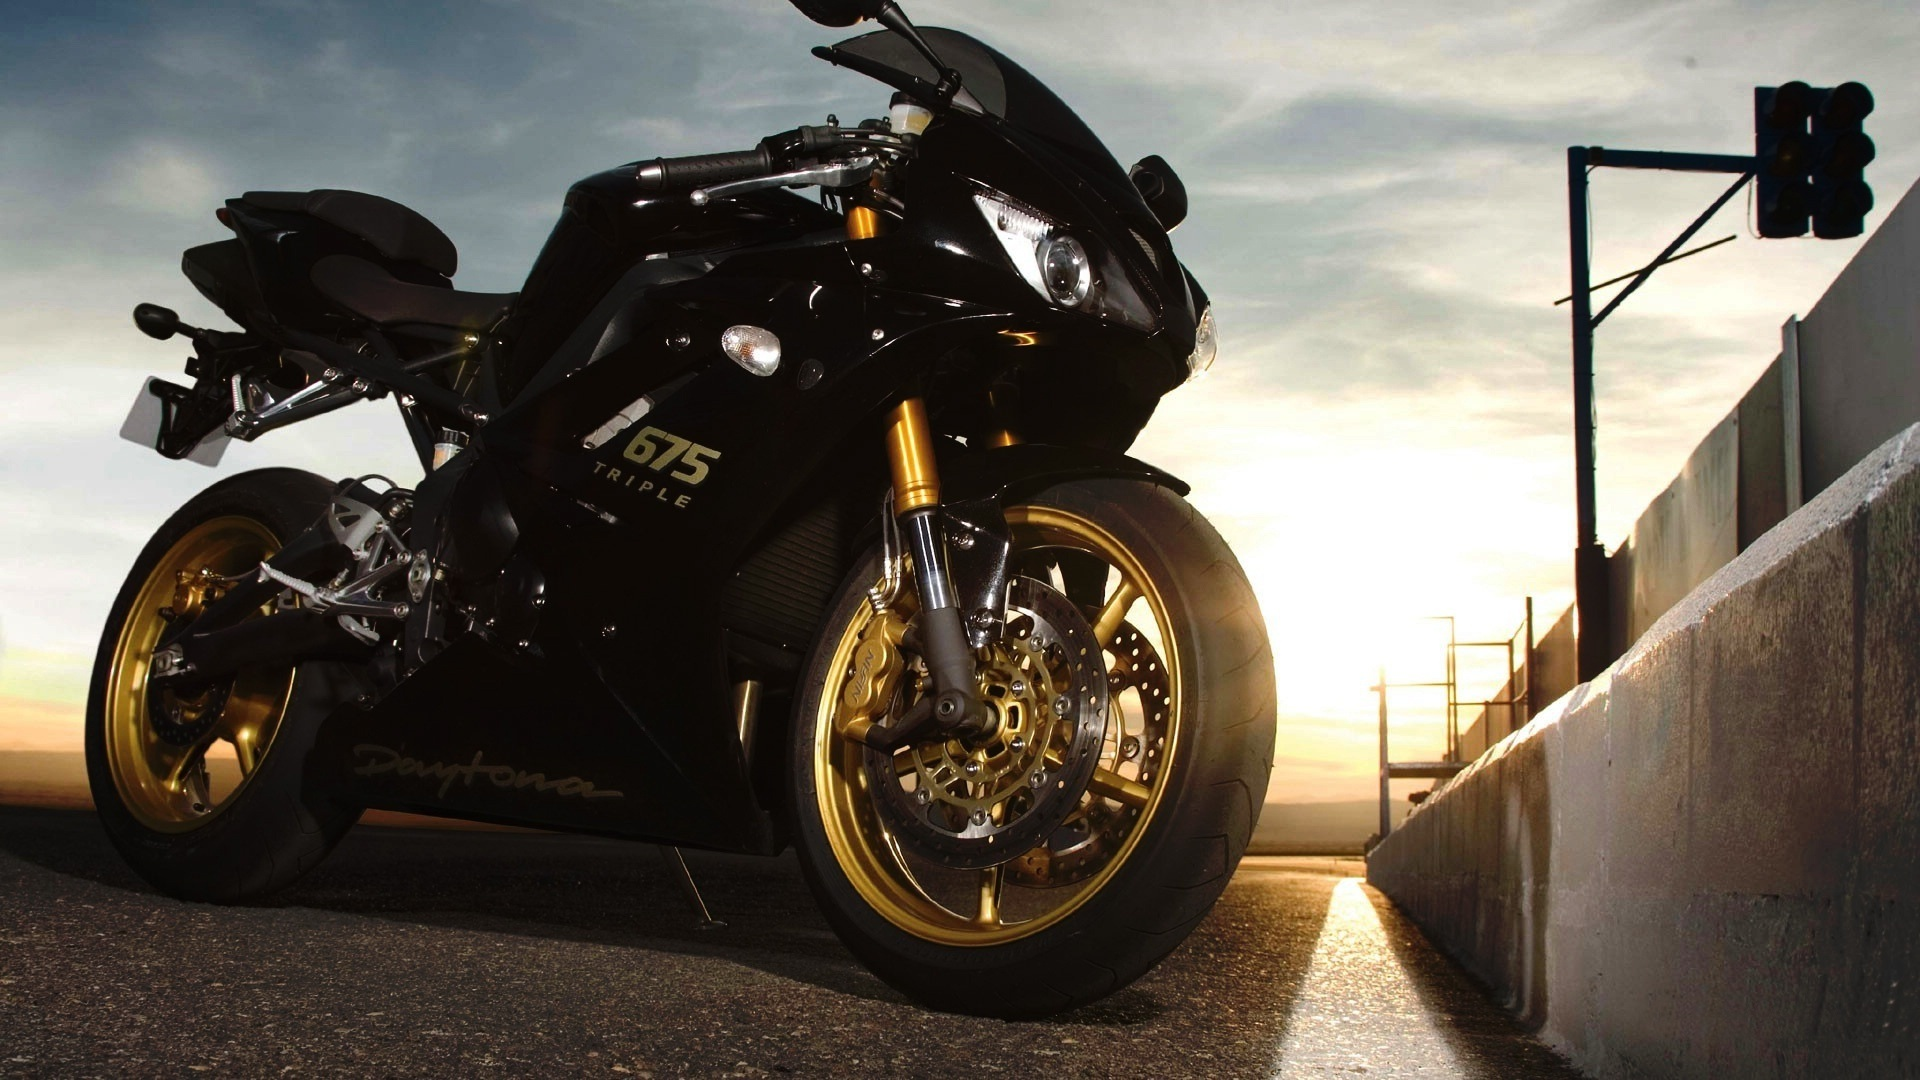 triumph daytona 675 wallpaper 49580